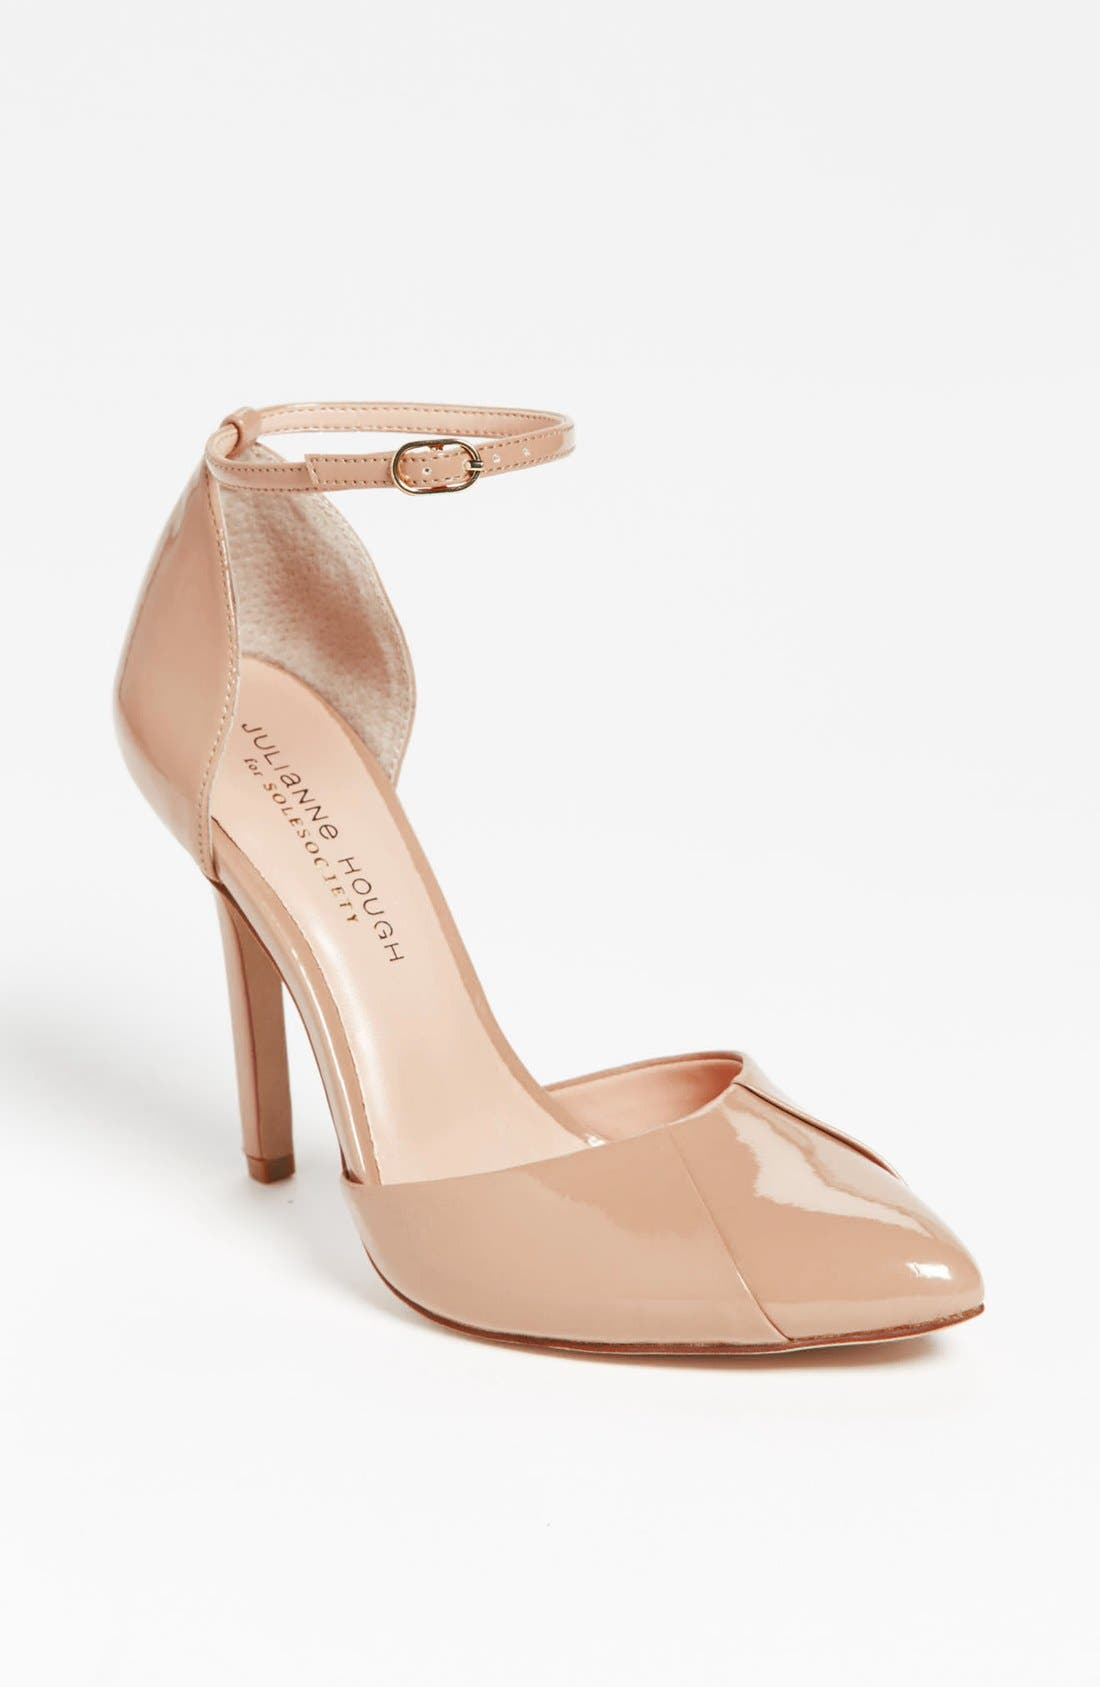 Main Image - Julianne Hough for Sole Society 'Giselle' Pump